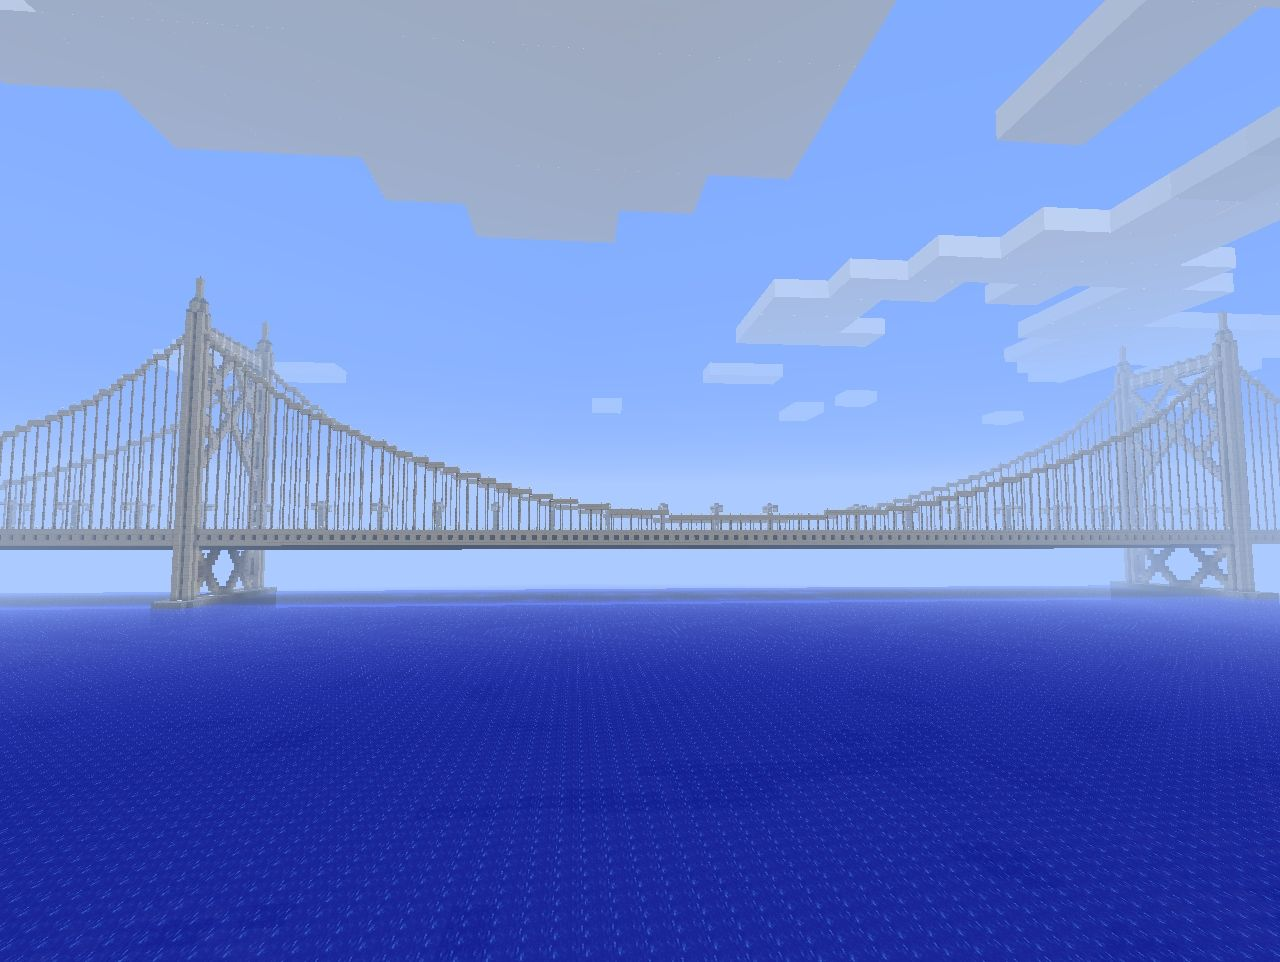 How To Build A Bridge In Minecraft Survival